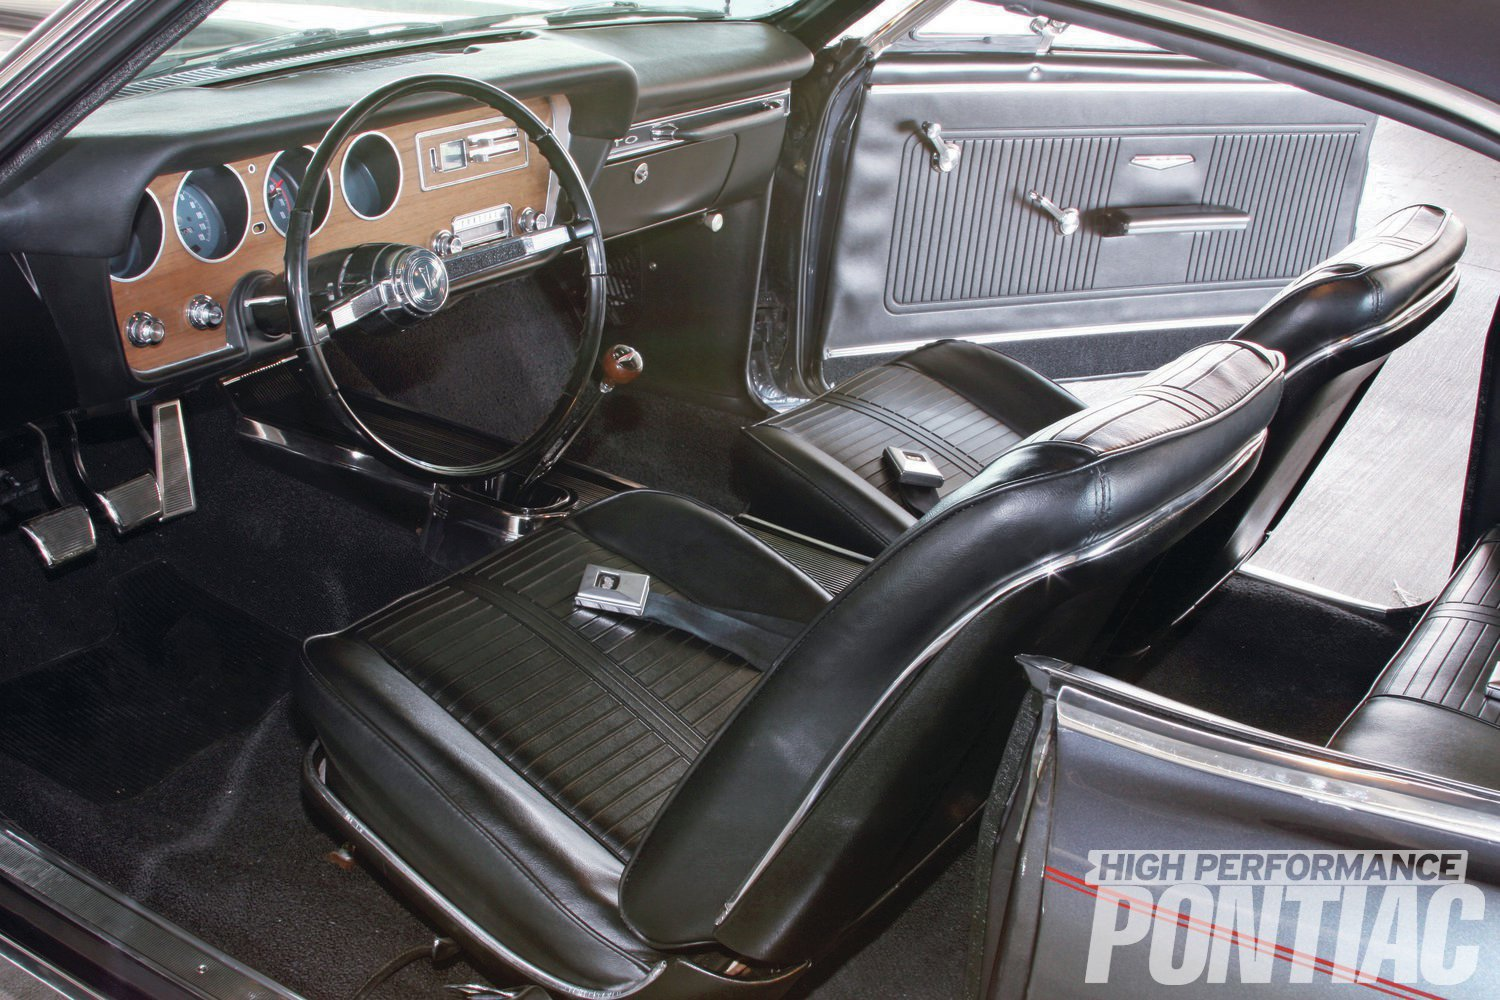 The black interior was restored using a host of reproduction components sourced from Ames Performance. Just the seat frames and kick panels are original. The only convenience options this particular GTO was equipped with are Custom seatbelts, front console, and pushbutton radio.